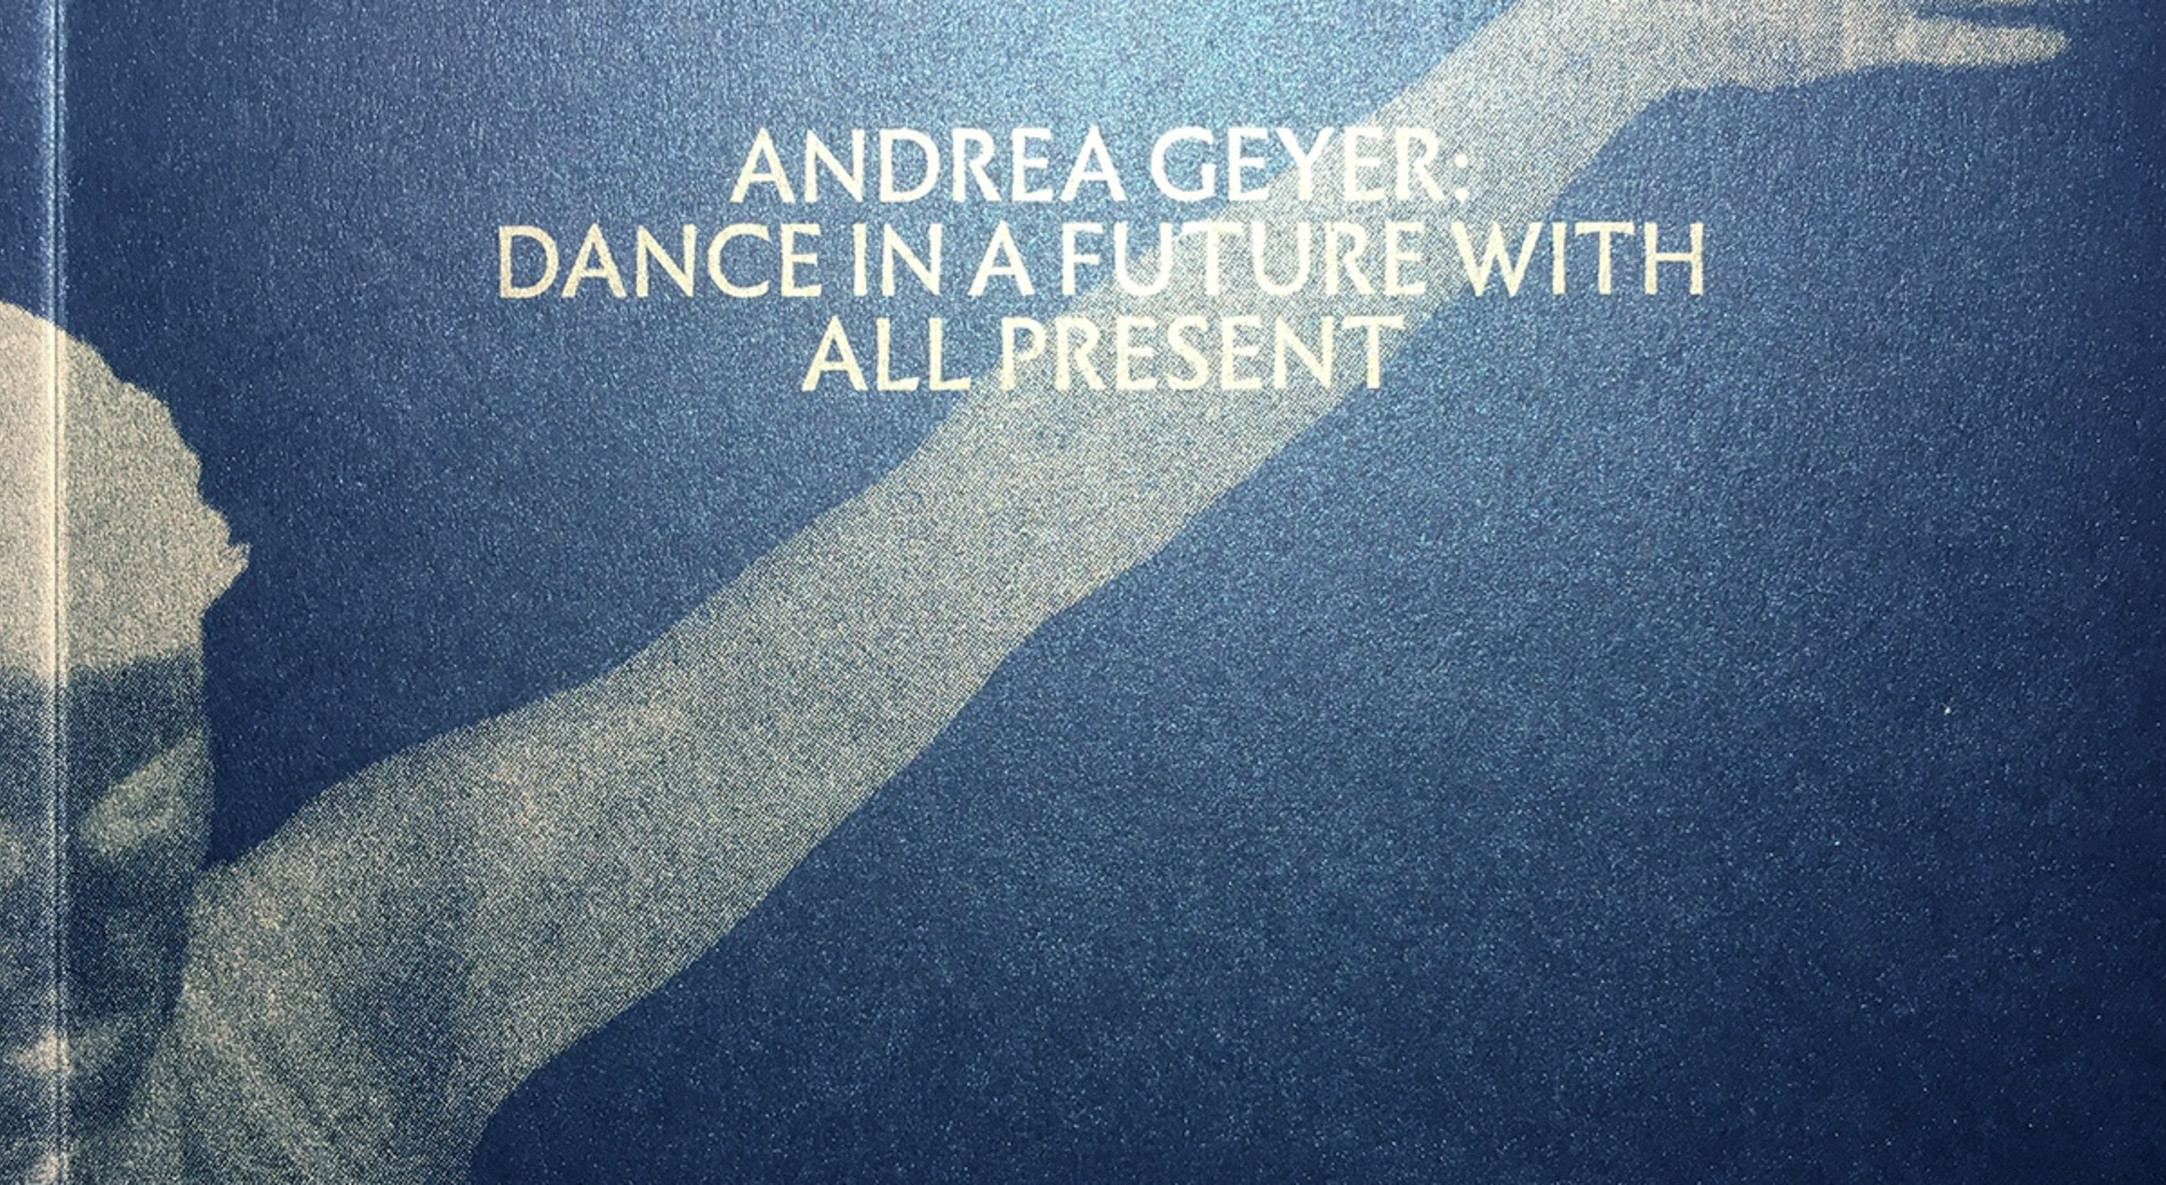 Andrea Geyer, Dance in a Future with All Present